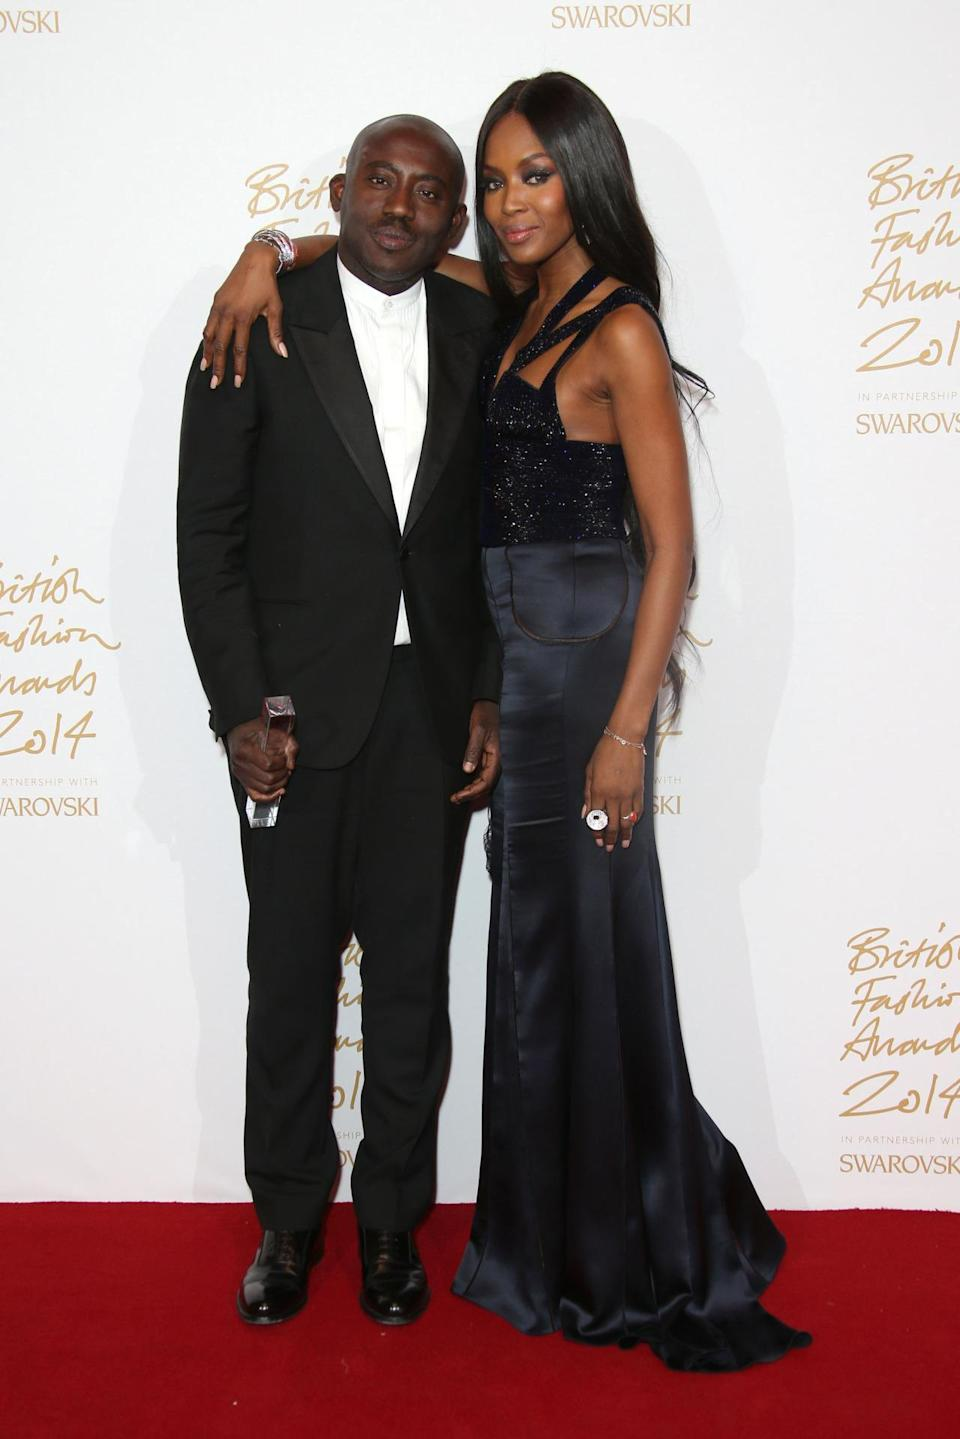 """""""I'm so happy to give it to him,"""" Naomi Campbell, wearing a custom Alexander McQueen gown, proclaimed after presenting Edward Enninful the Isabella Blow Award for Fashion Creator. """"He pushes boundaries … and reminds us that black is beautiful,"""" she said."""